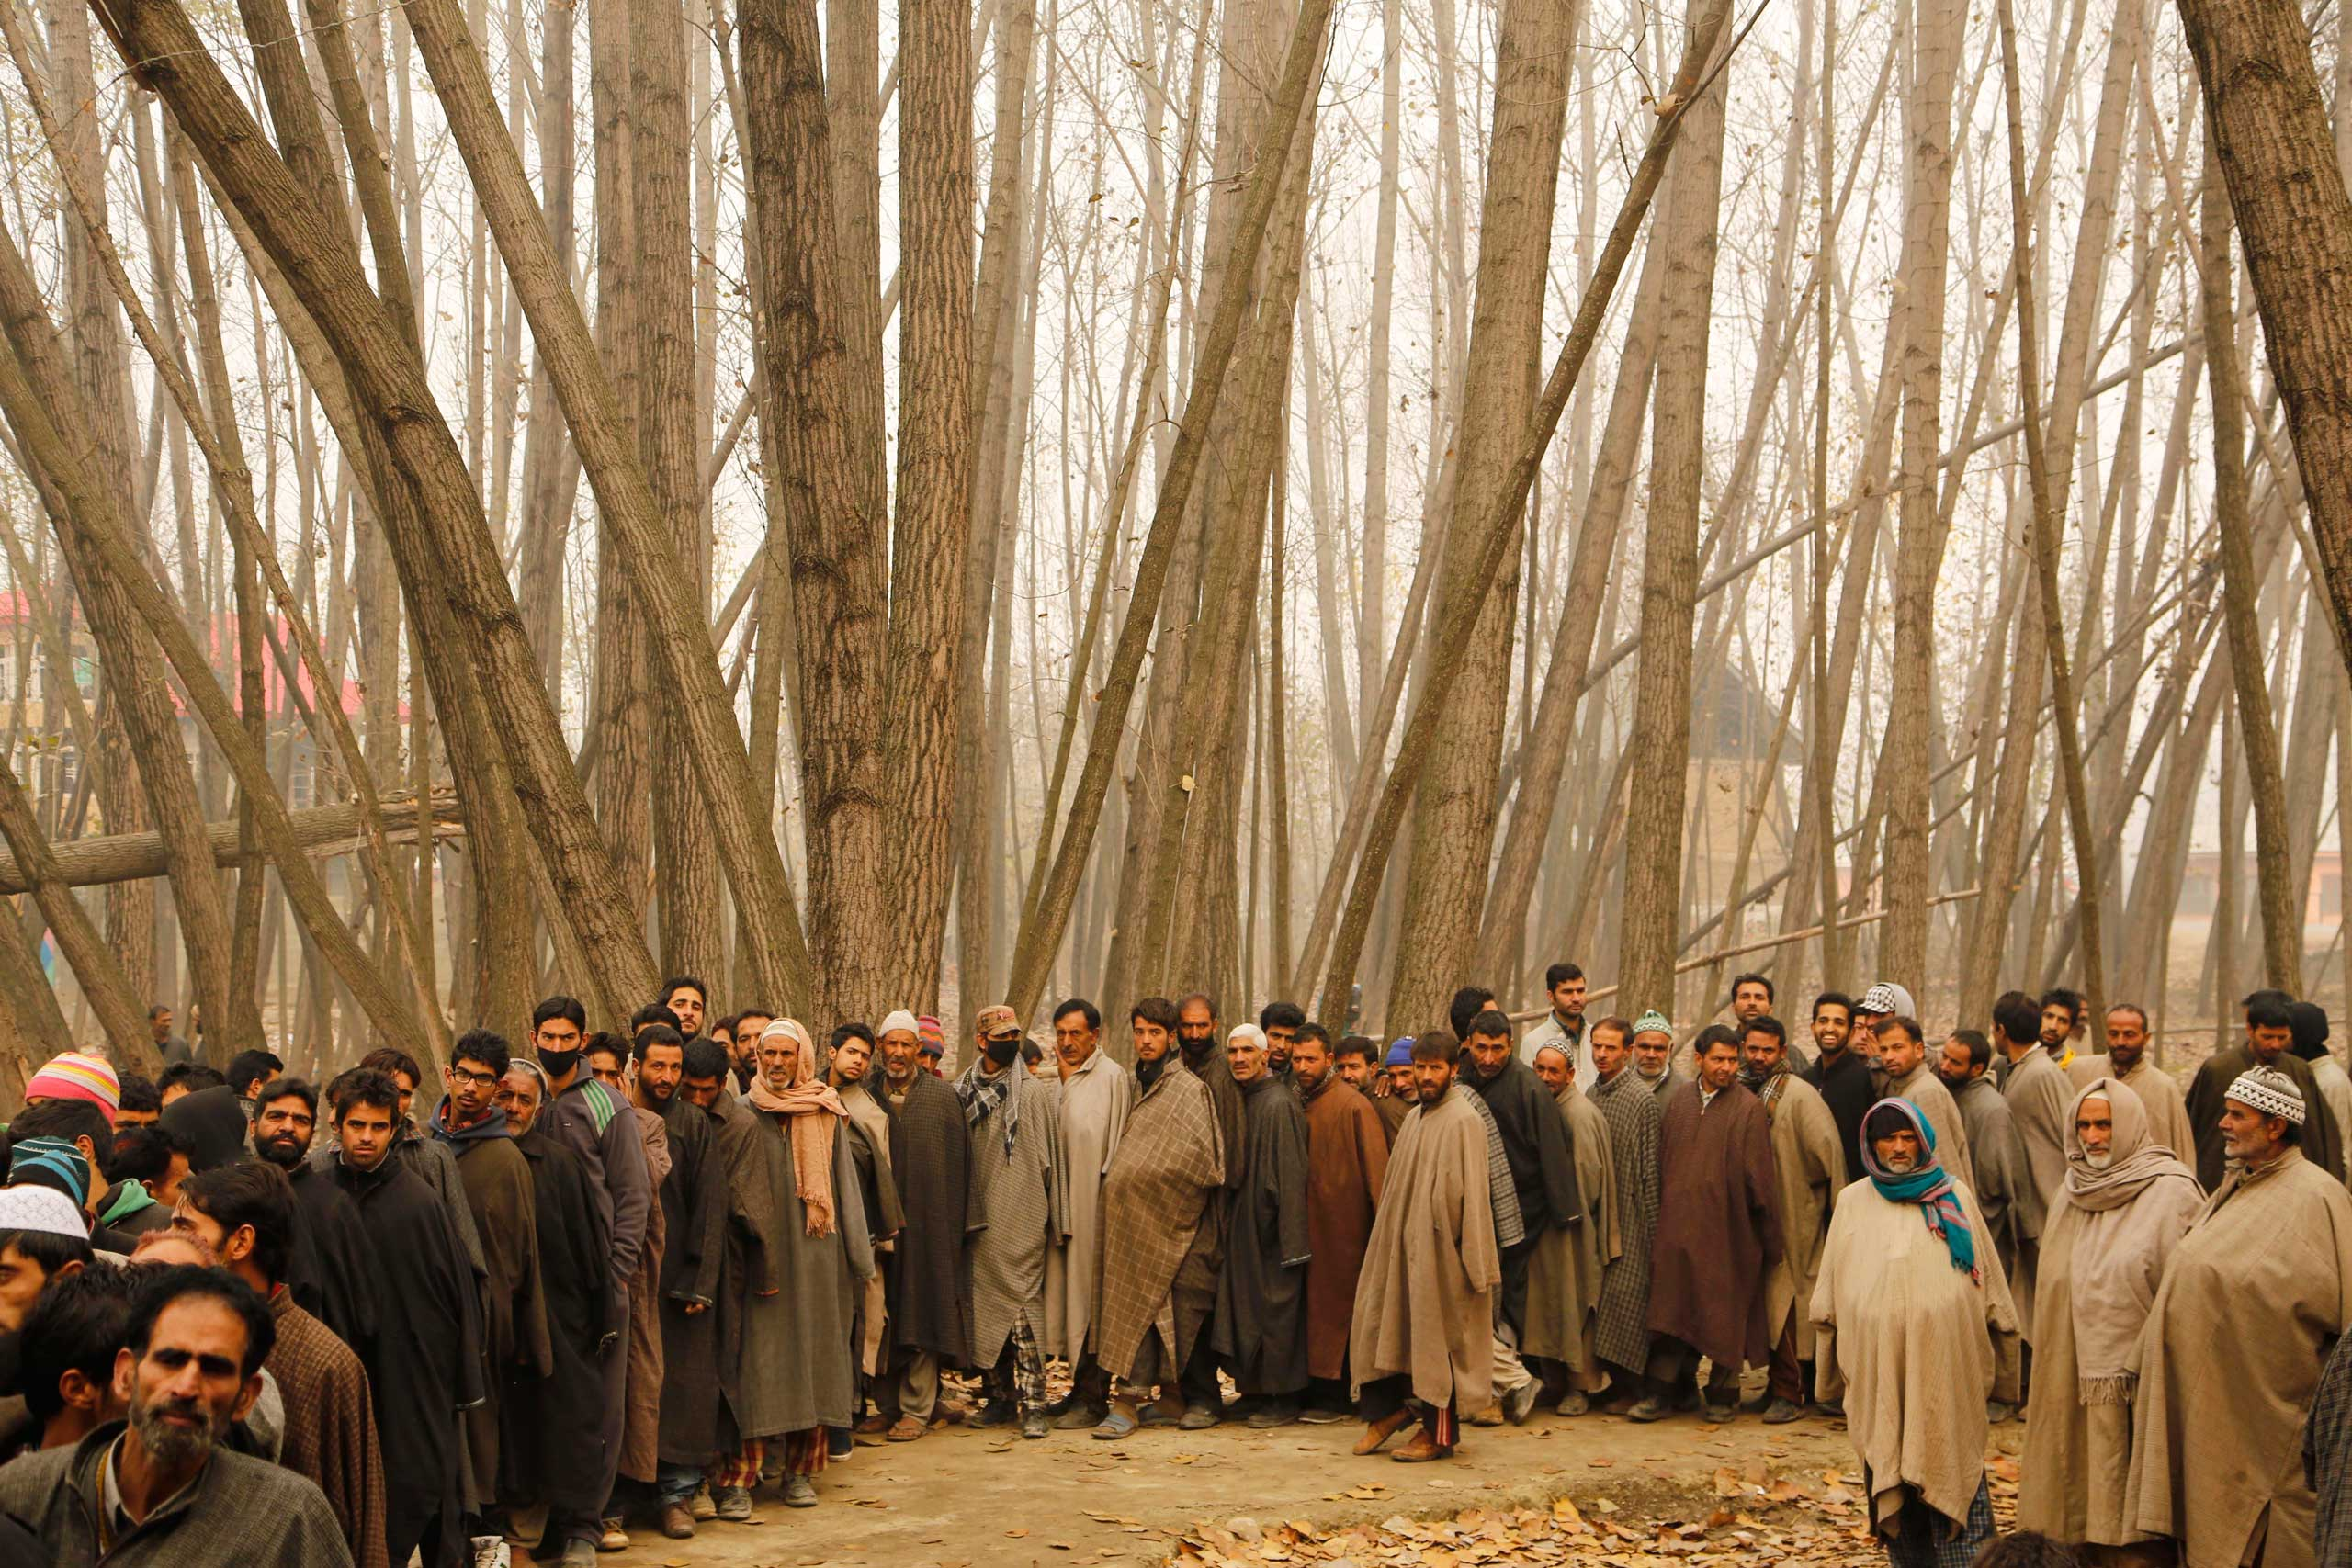 Nov. 25, 2014. Kashmiris queue to cast their votes outside a polling station during the first phase of voting to the Jammu and Kashmir state assembly elections in Shadipora, outskirts of Srinagar in the Indian controlled Kashmir. Thousands lined up to cast their votes amid a boycott call by Muslim separatist groups who reject India's sovereignty over the disputed Himalayan region.